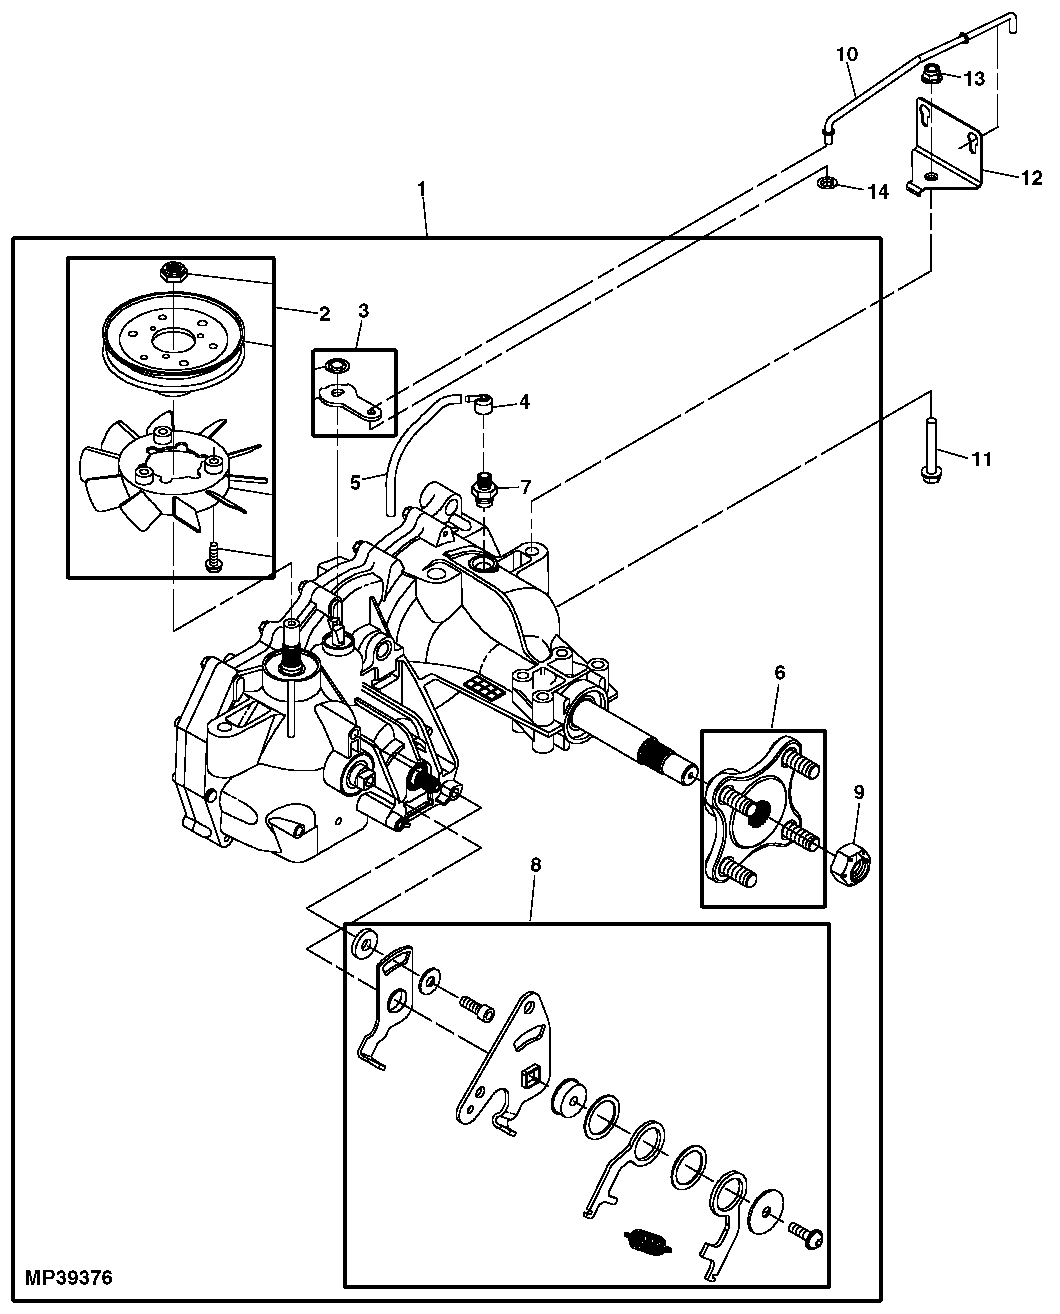 Wiring Diagram For John Deere Z225 Mower Wiring Diagram